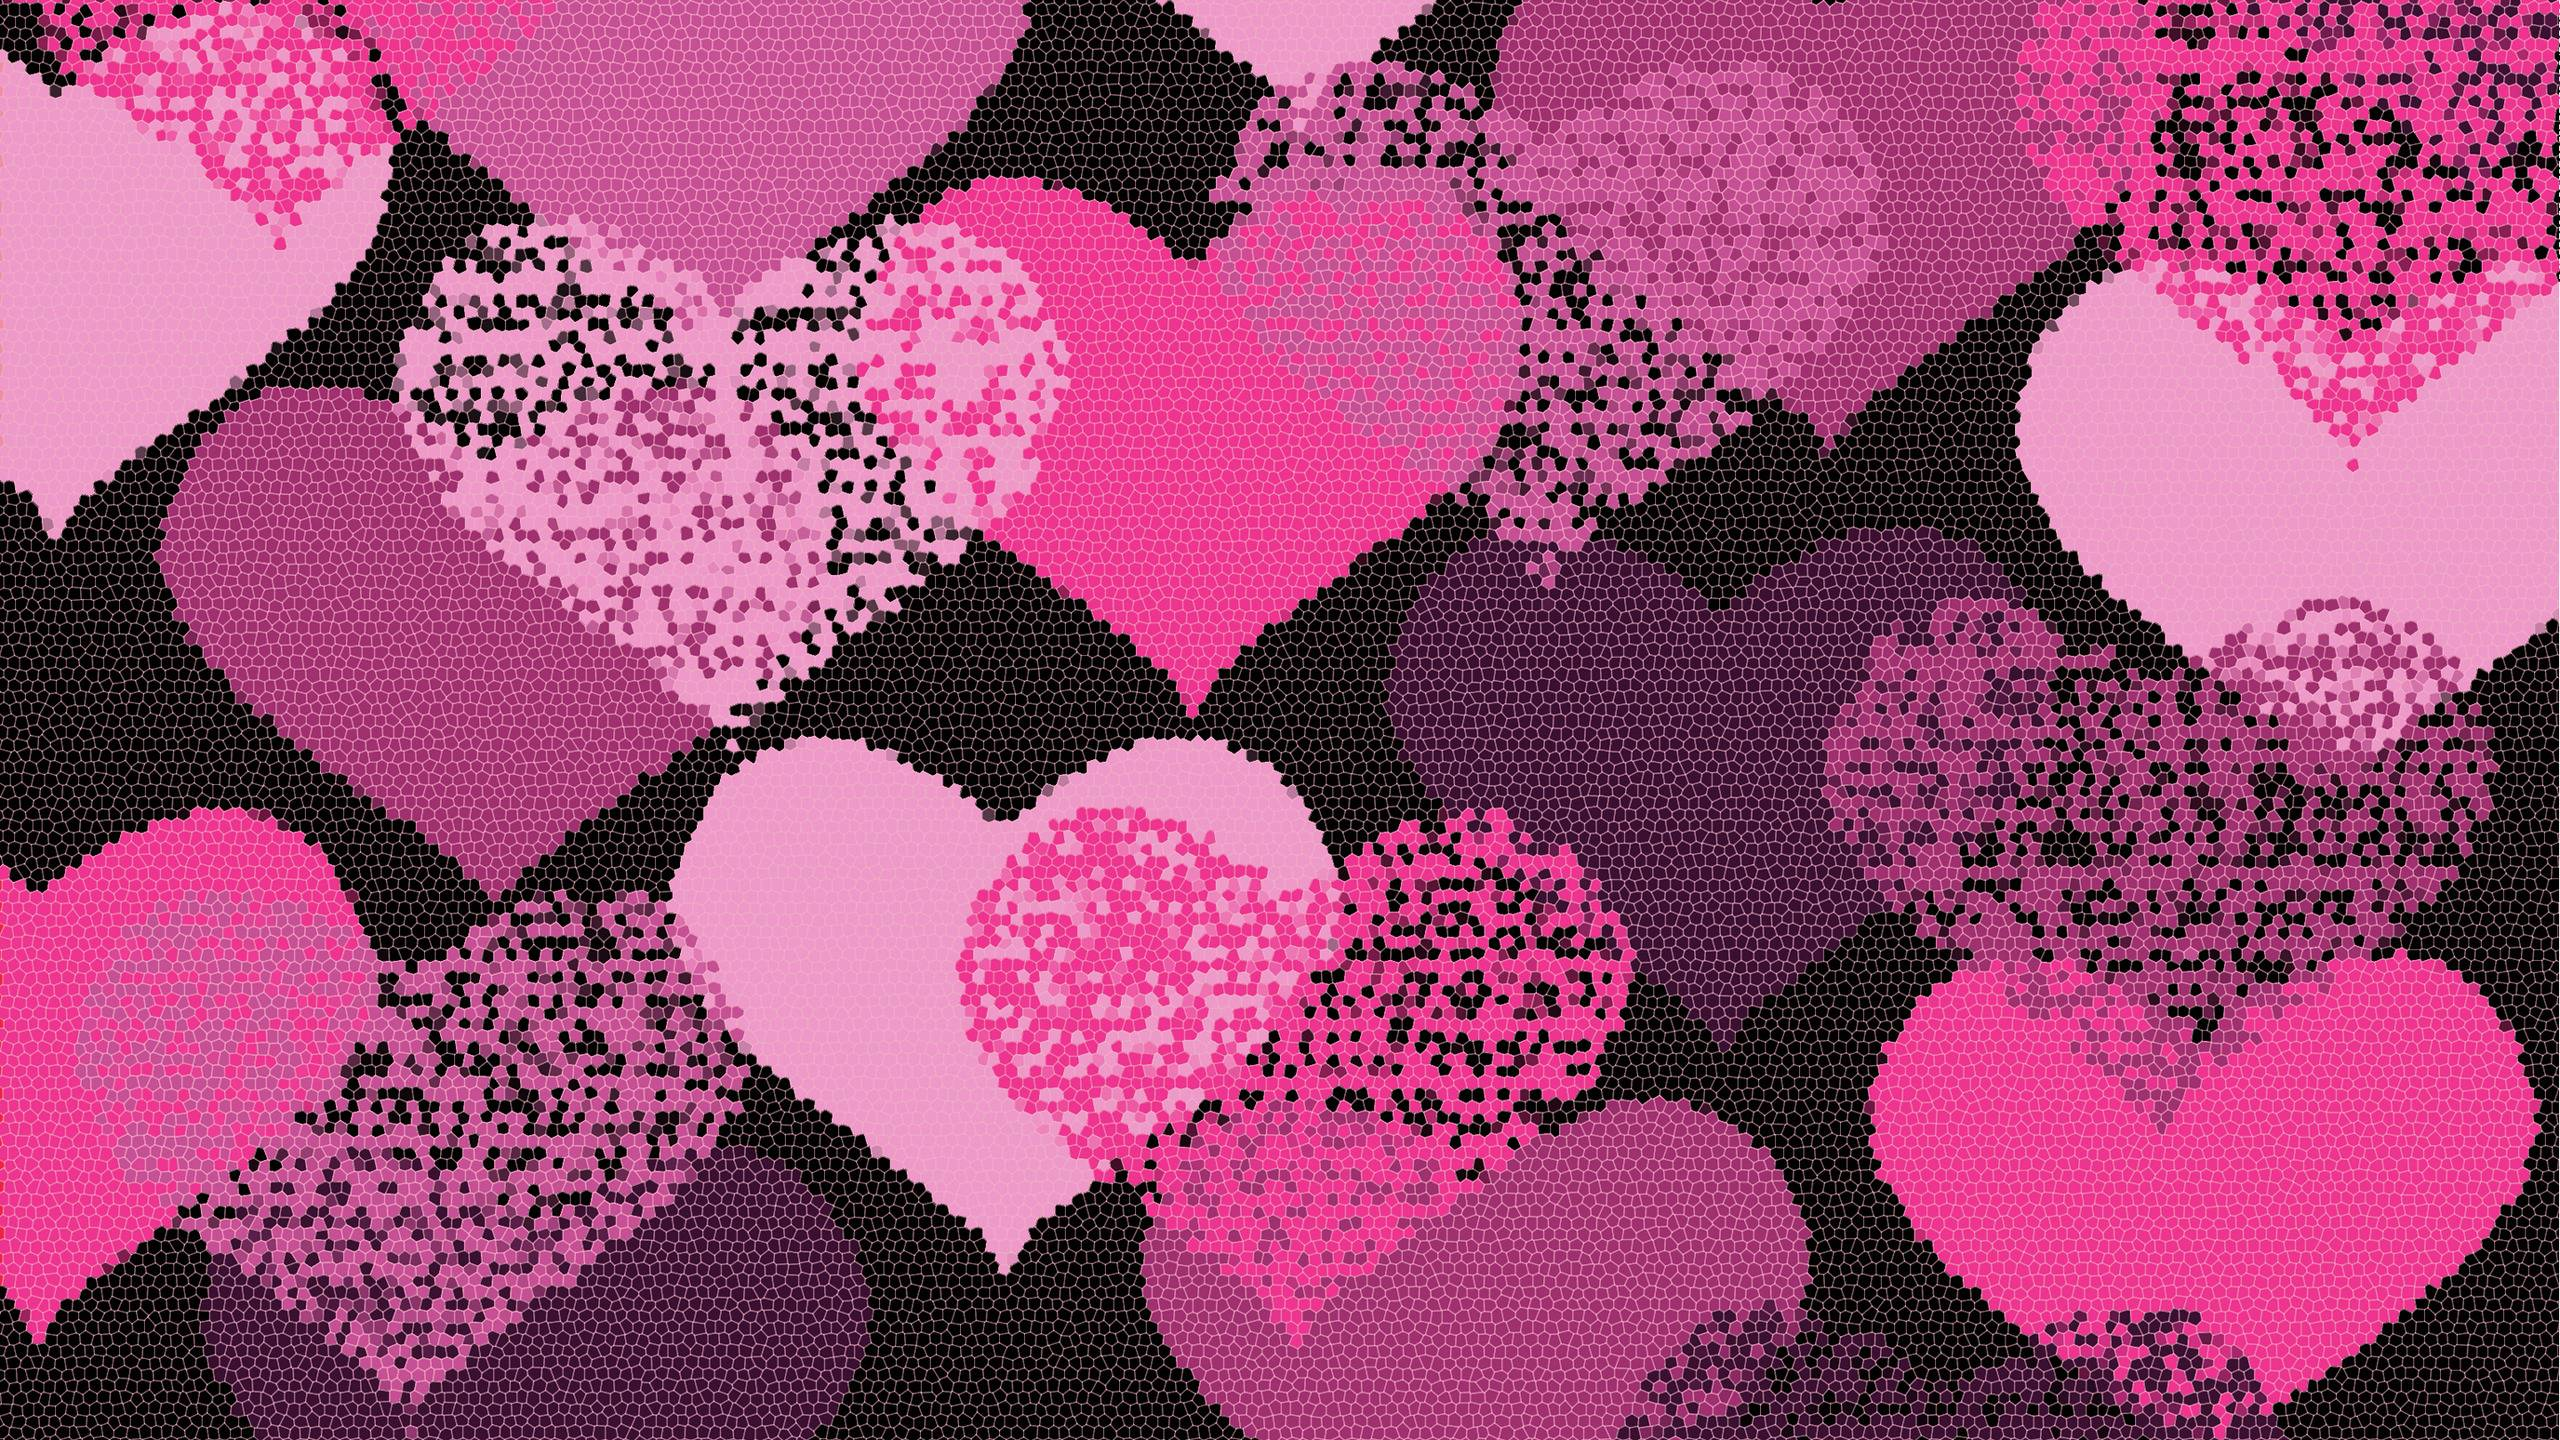 Aesthetic Judgments: Composition, Color Story Photofocus Pictures of pink and black hearts